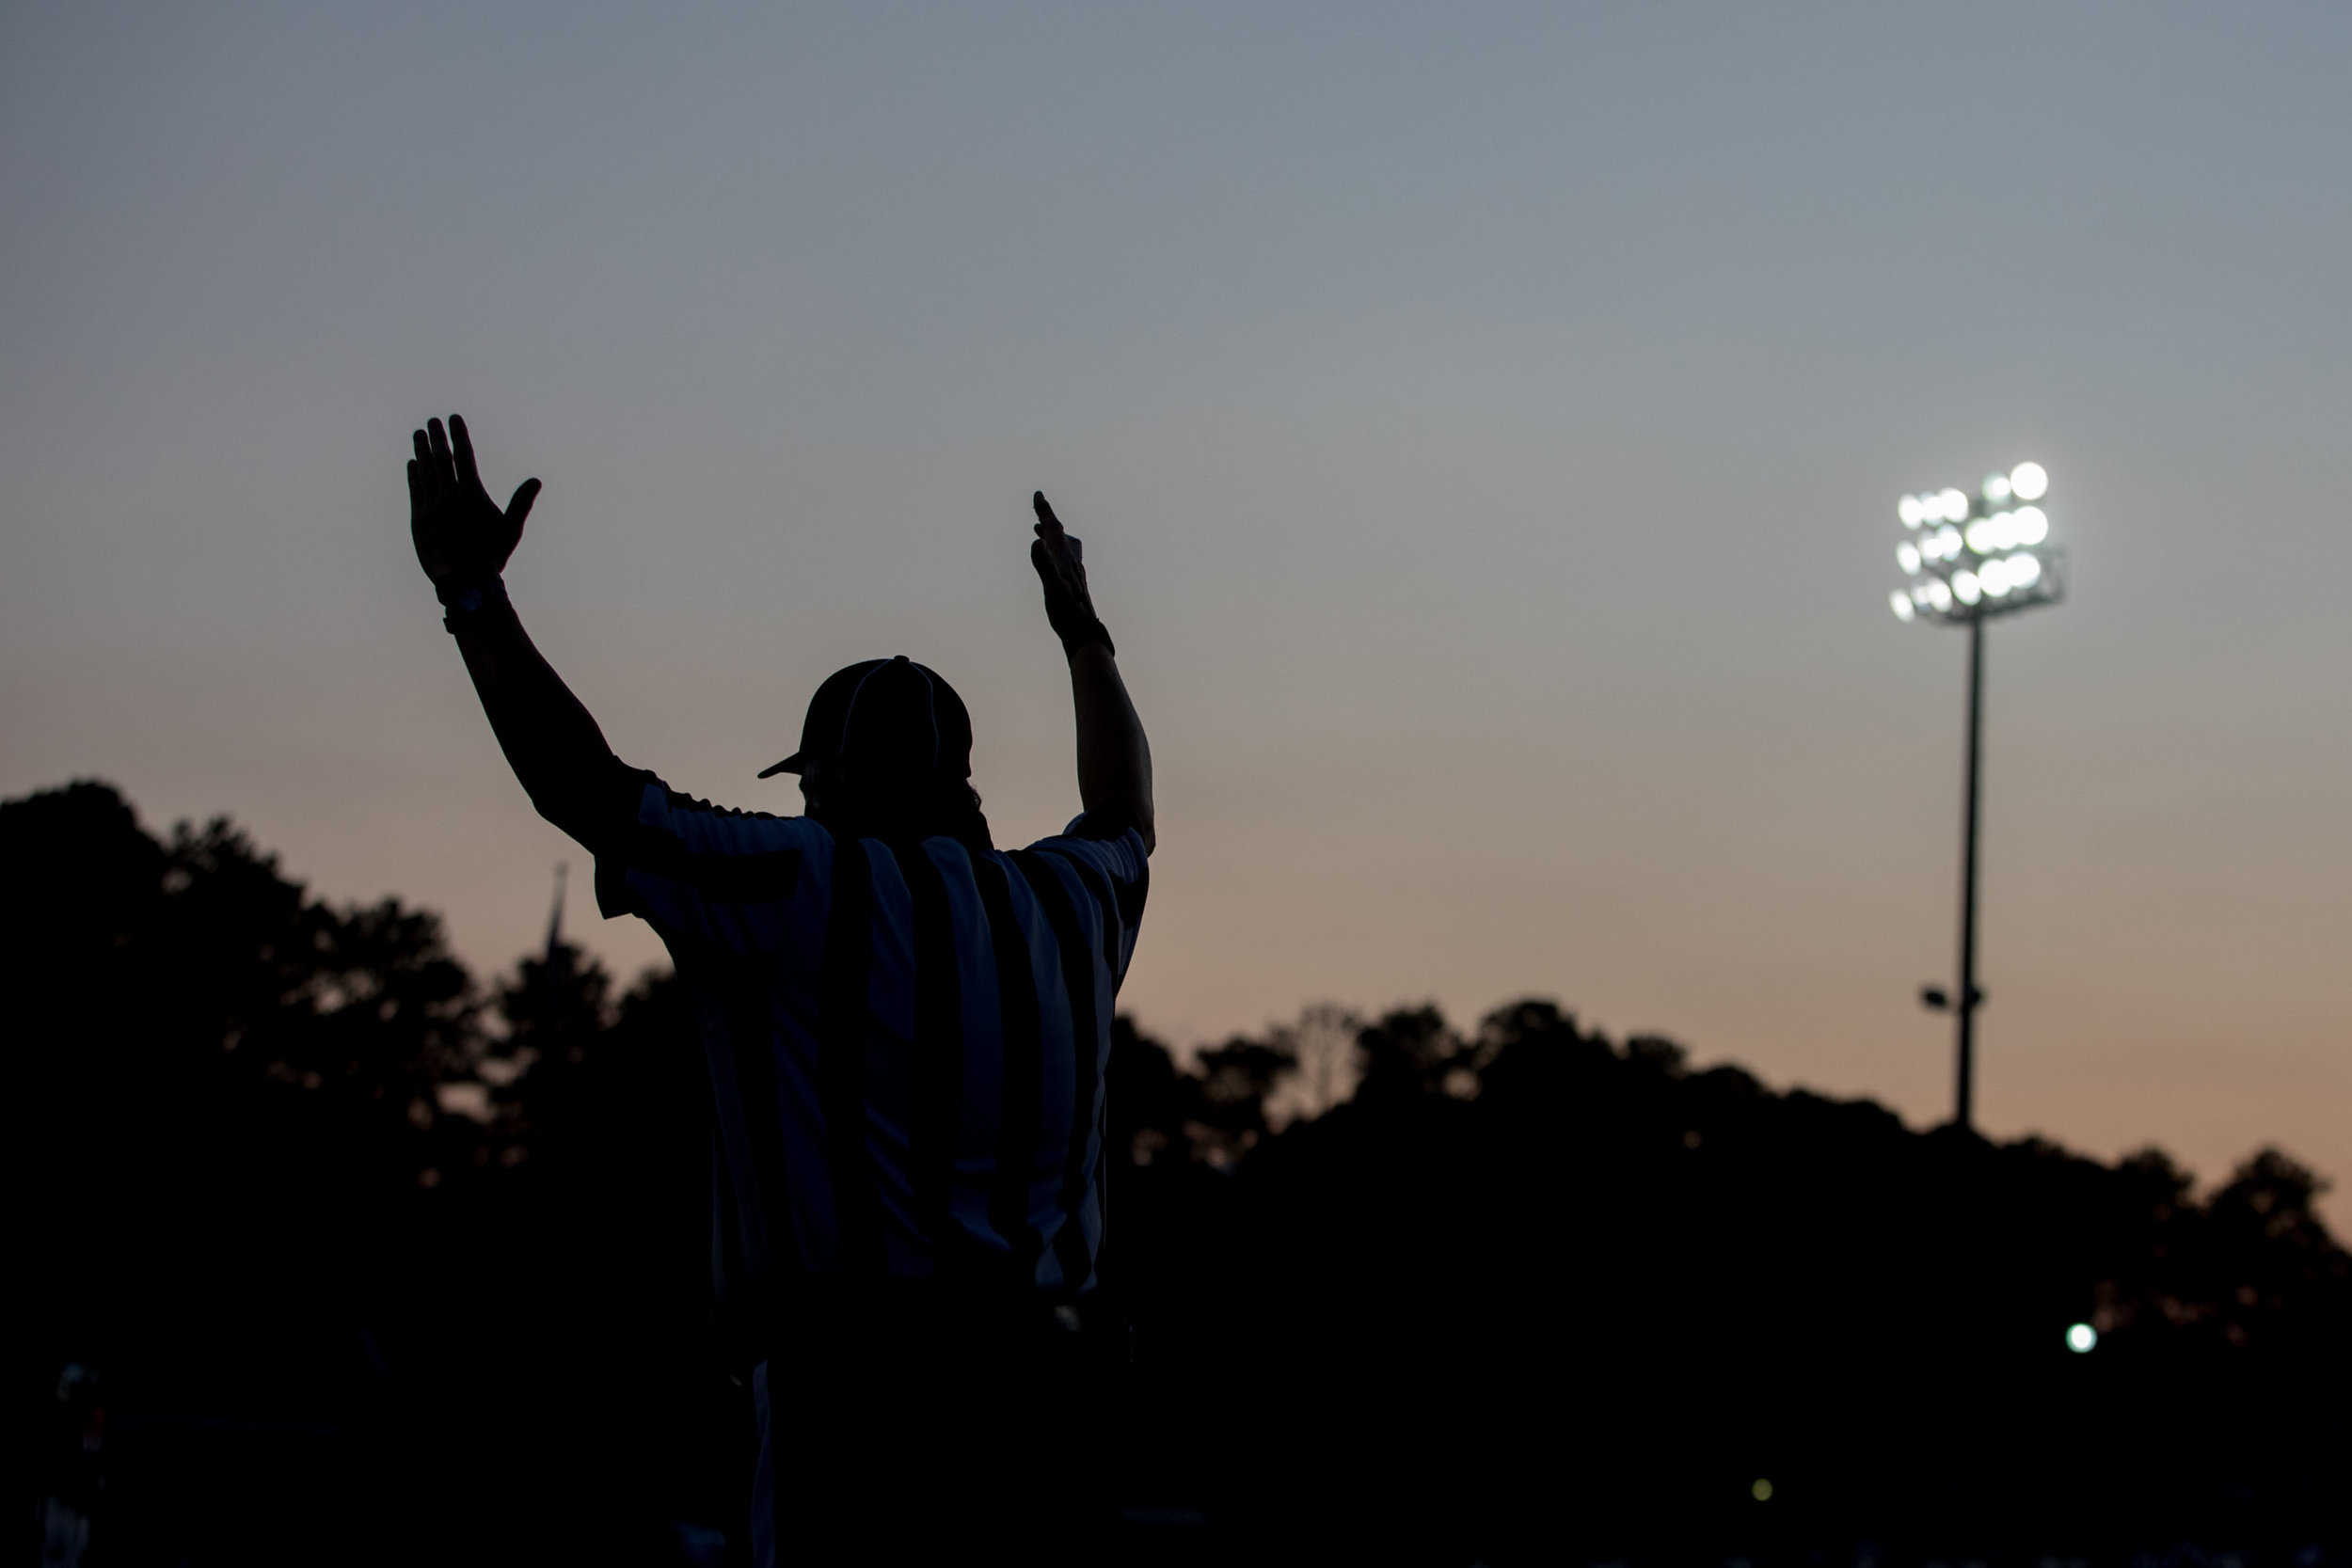 A referee signals good on a kick by Greater Atlanta Christian during a high school football game against Valor Christian of Colorado, Friday, Sept. 8, 2017, in Norcross, Ga. Branden Camp for The AJC